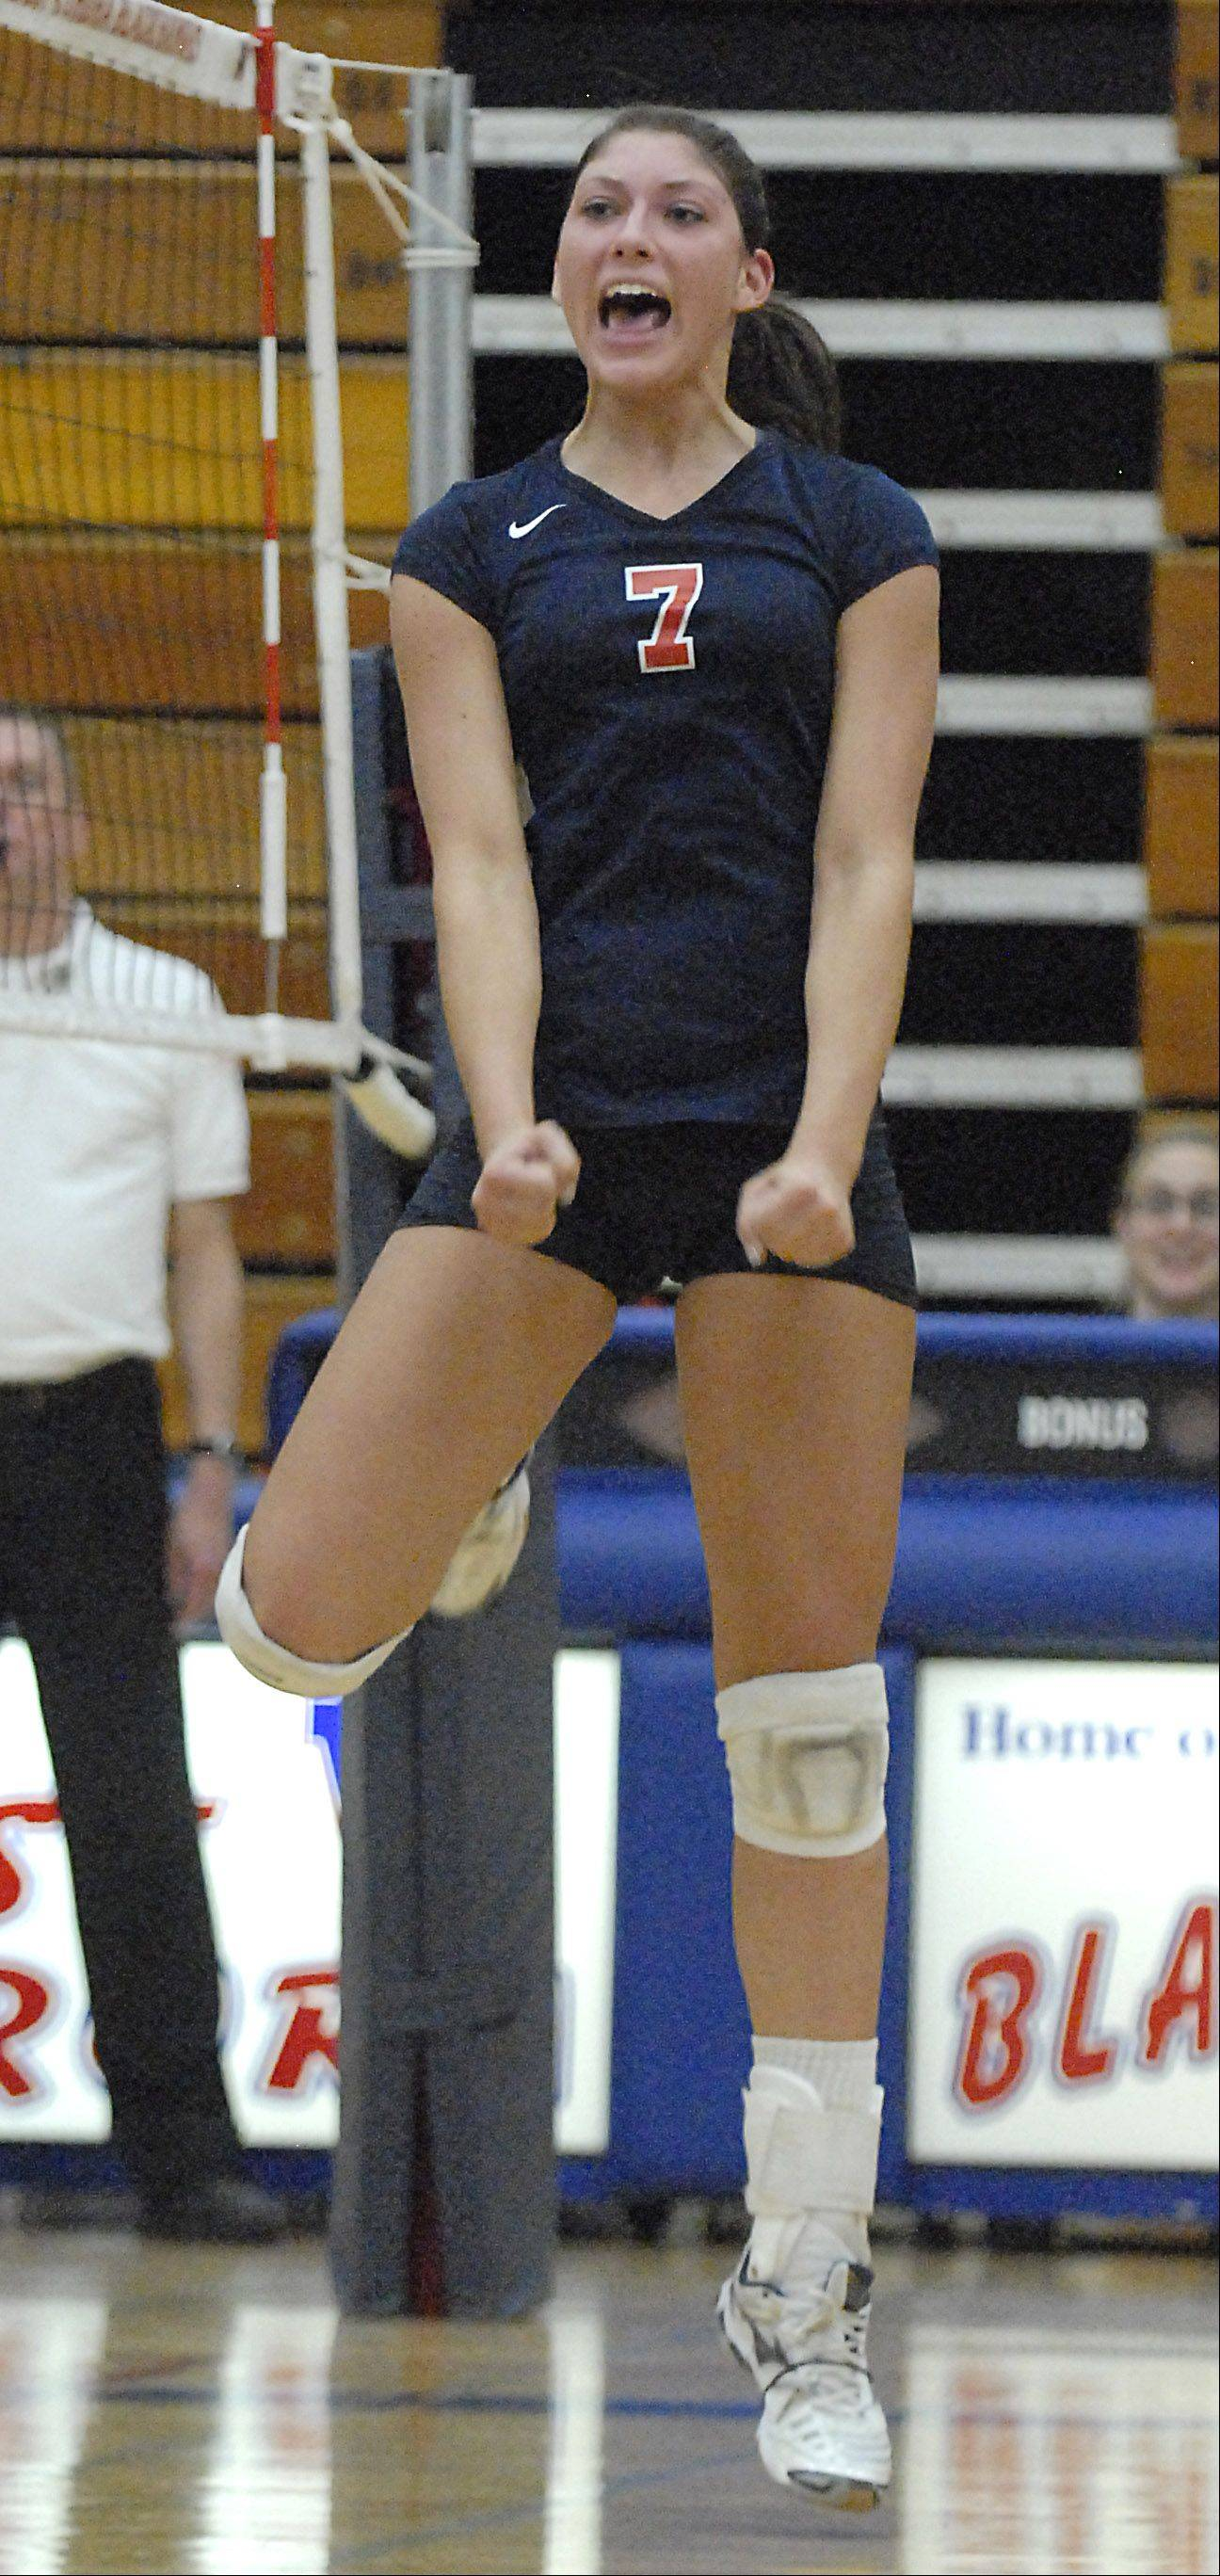 West Aurora's Lauren Carlini celebrates a point over Naperville North in the third game on Thursday, October 11.